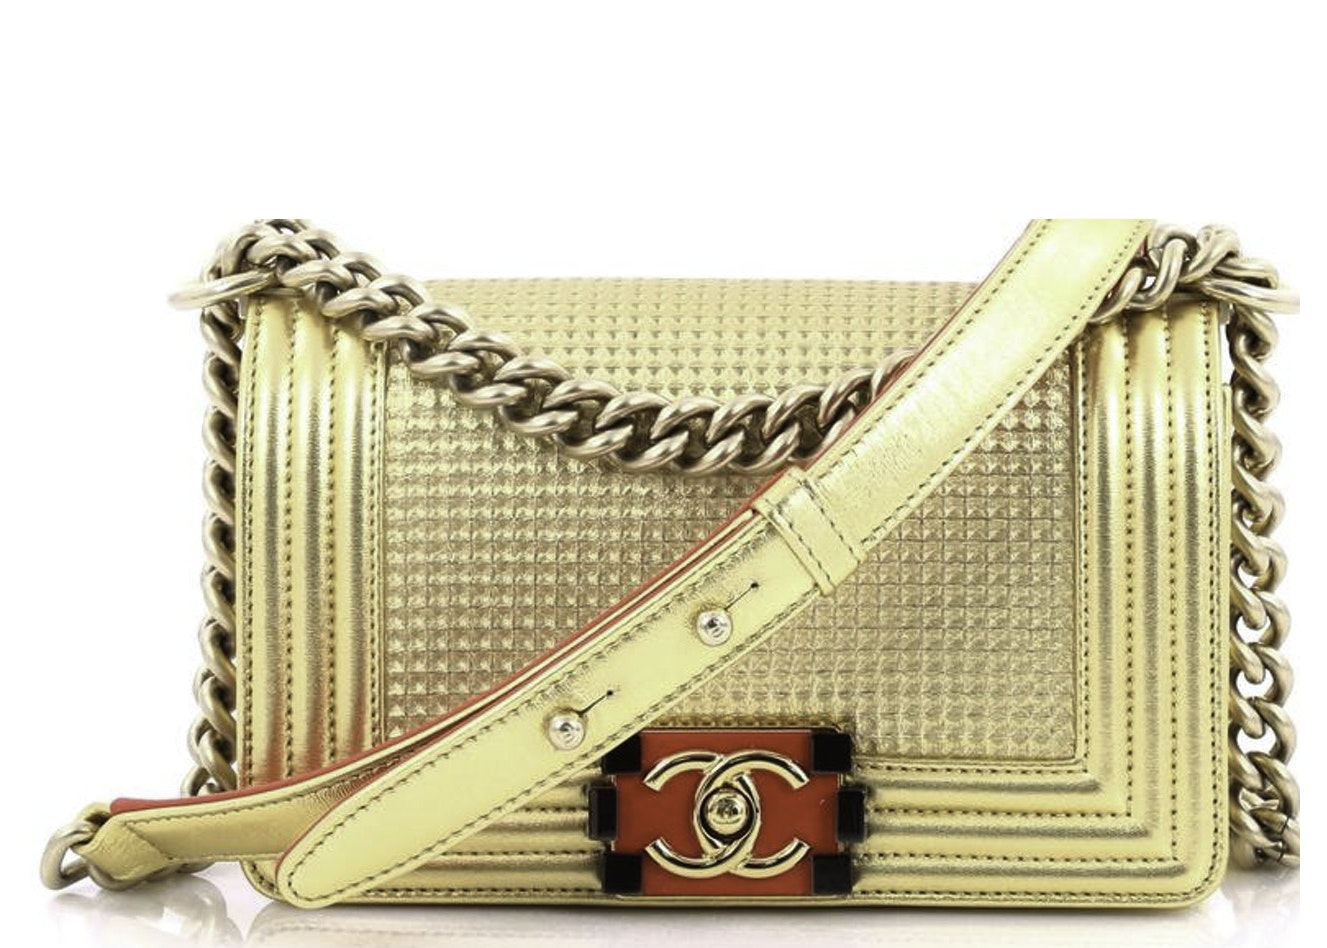 Chanel Boy Flap Bag Cube Embossed Small Gold